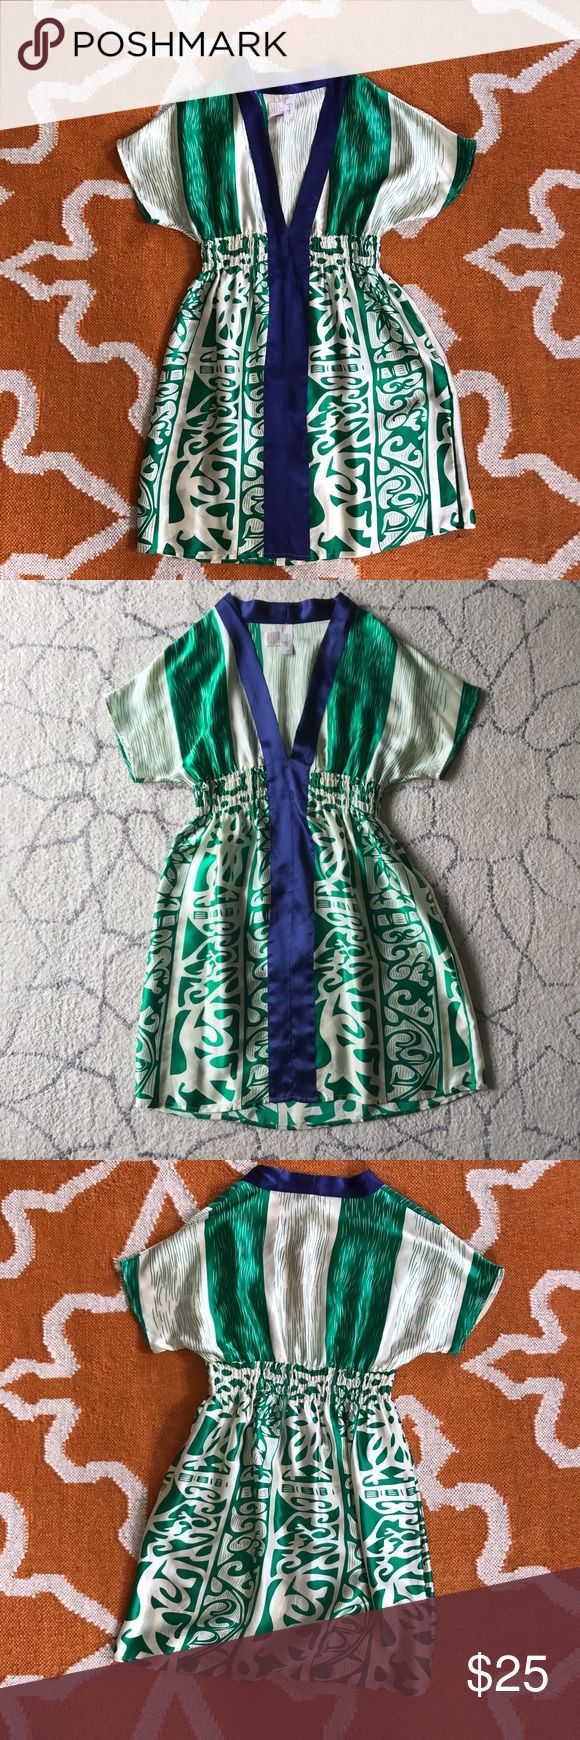 Riviera Maya Print Silk Dress/ Tunic Print is gorgeous in person! 100% silk. Plunging vneck. Smocked waist. 34 inches from shoulder to hem. Dresses Mini